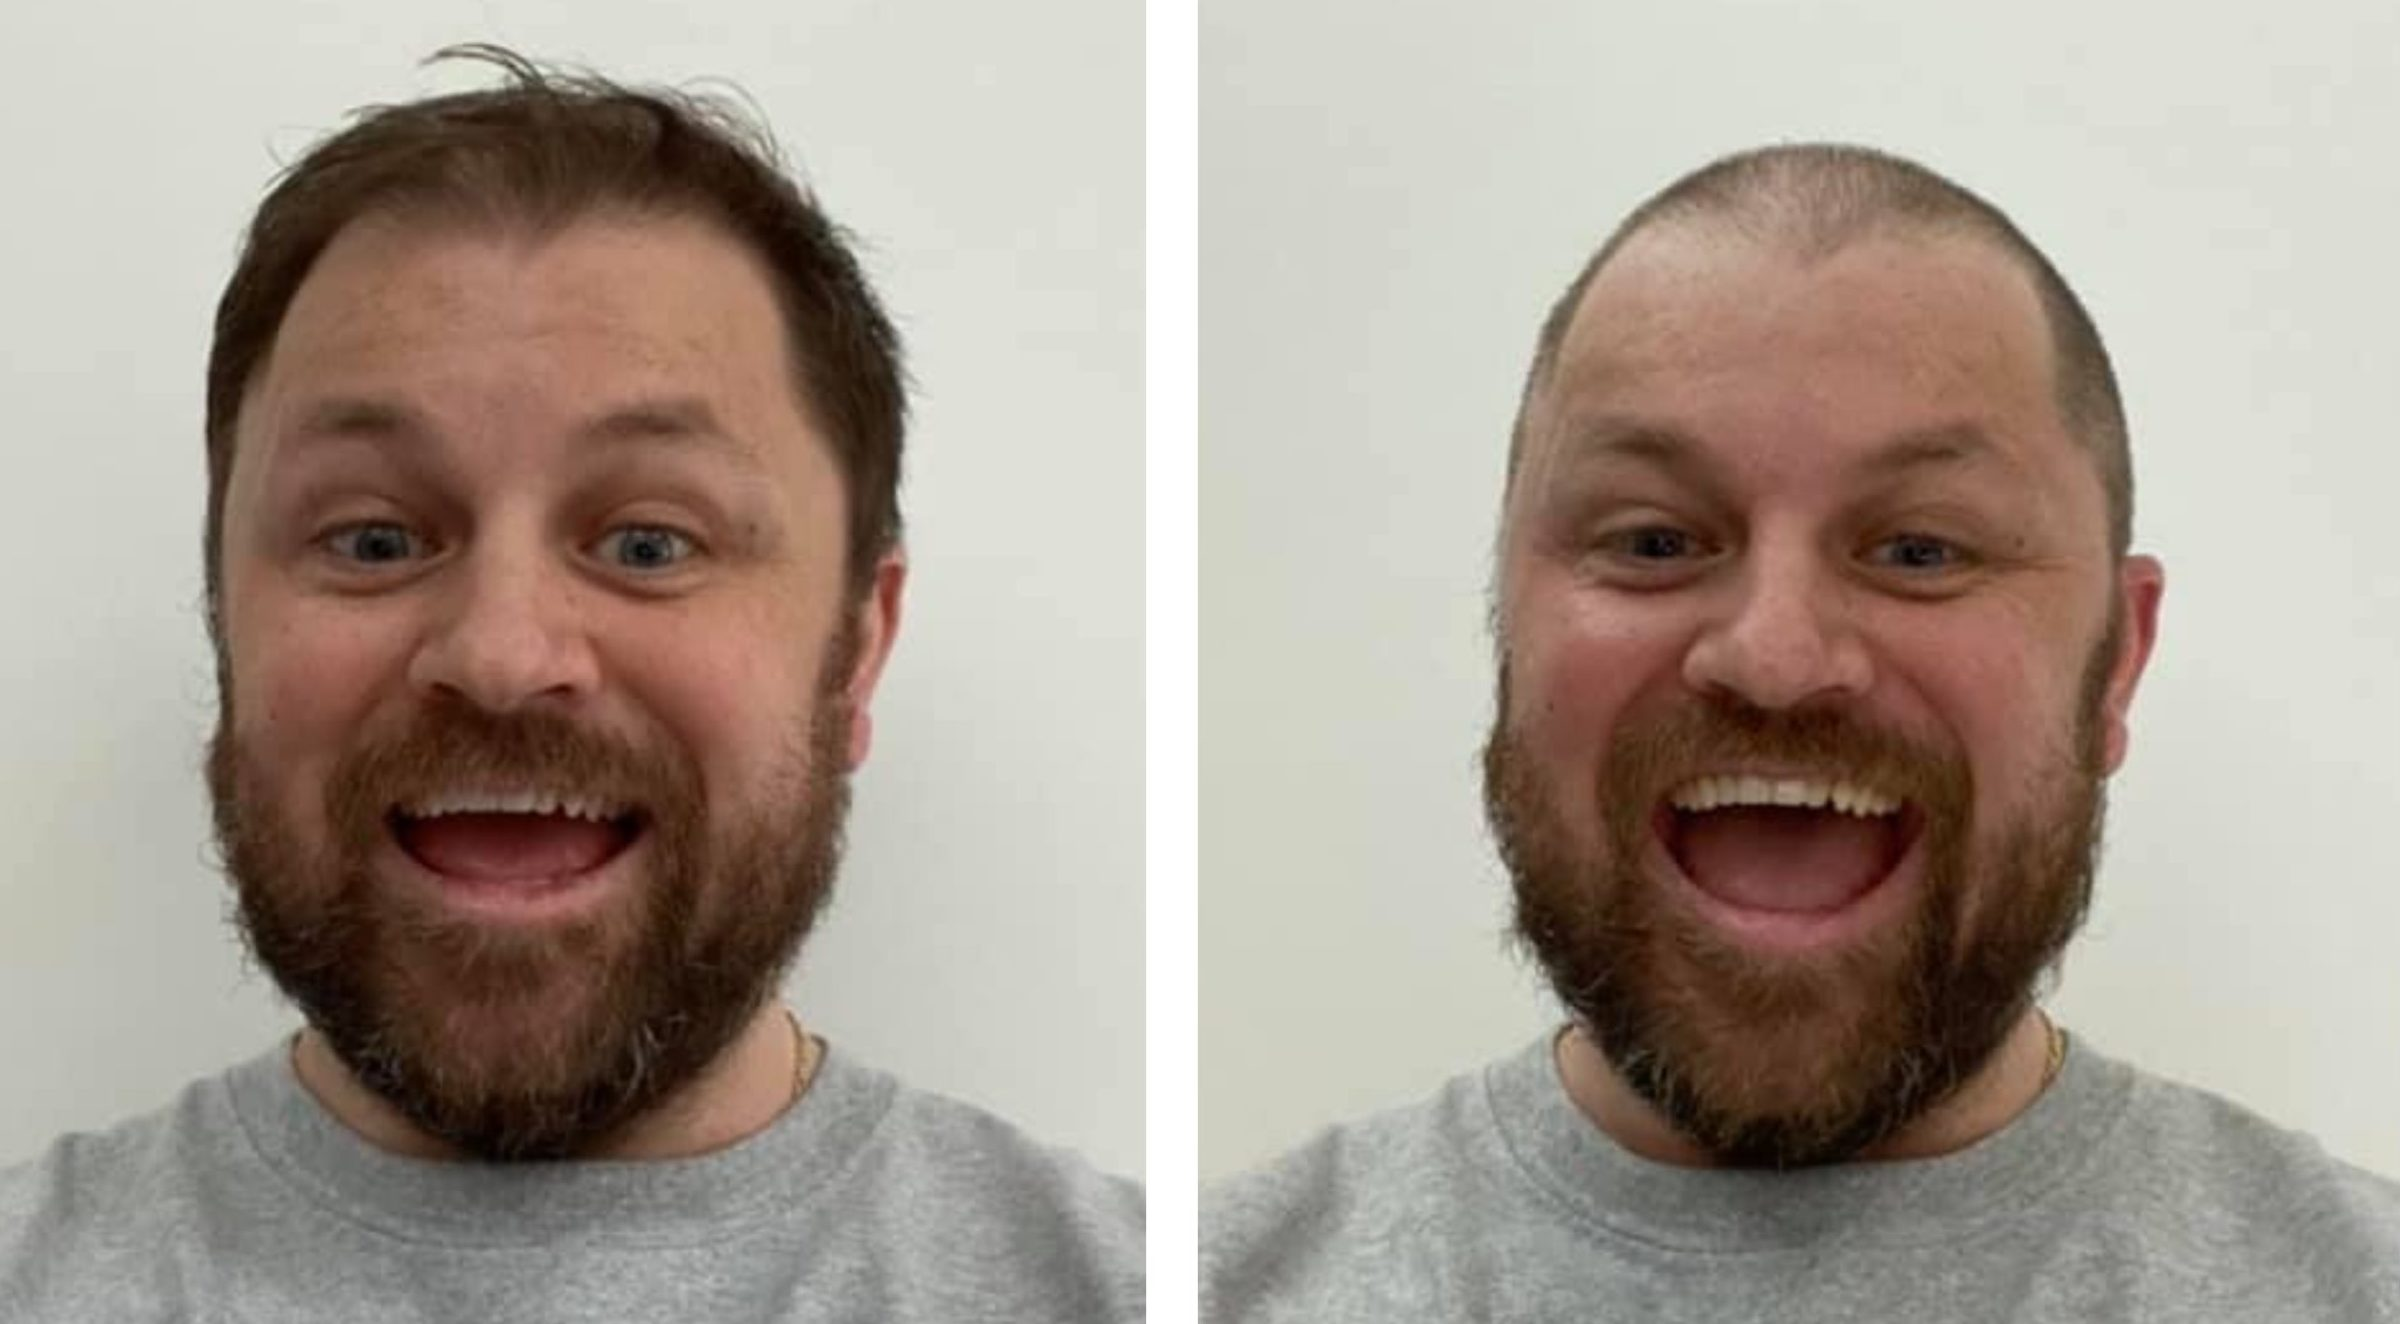 Barry Petrie, before and after the cut.